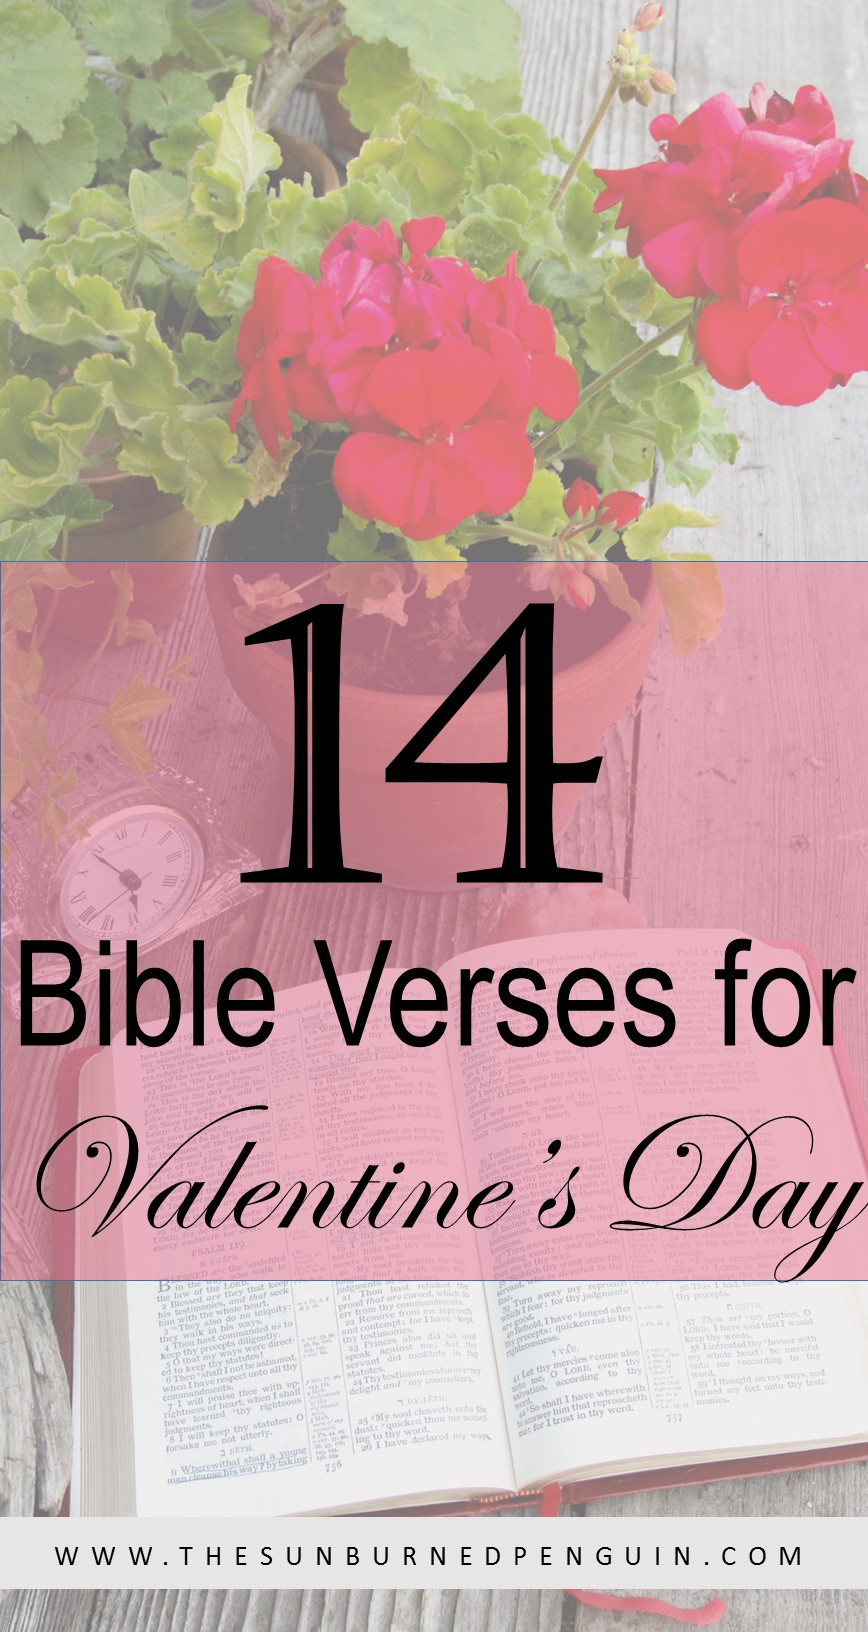 14 Bible Verses for Valentine's Day